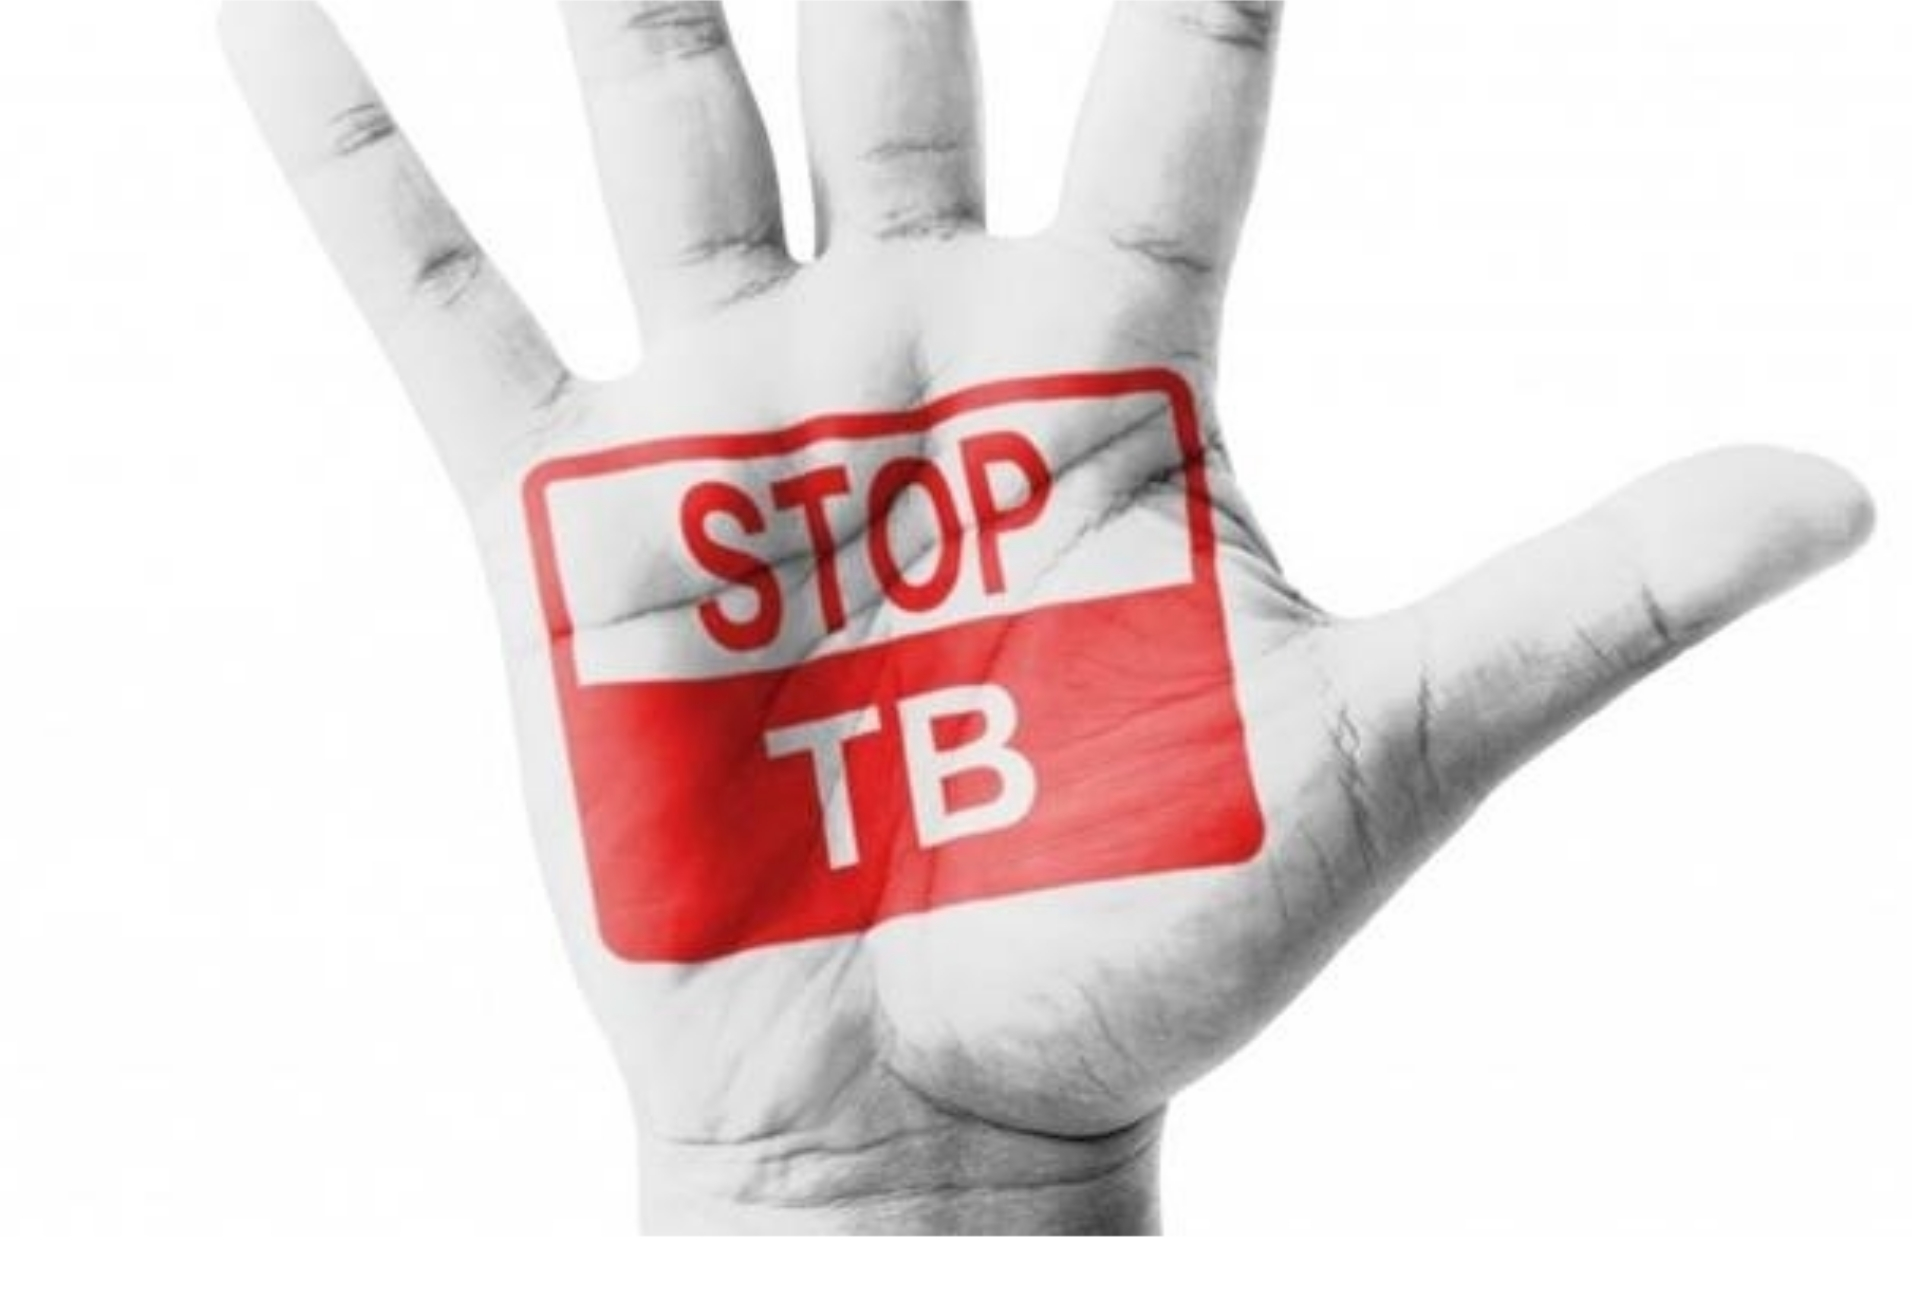 Assam media briefed on key issues on TB